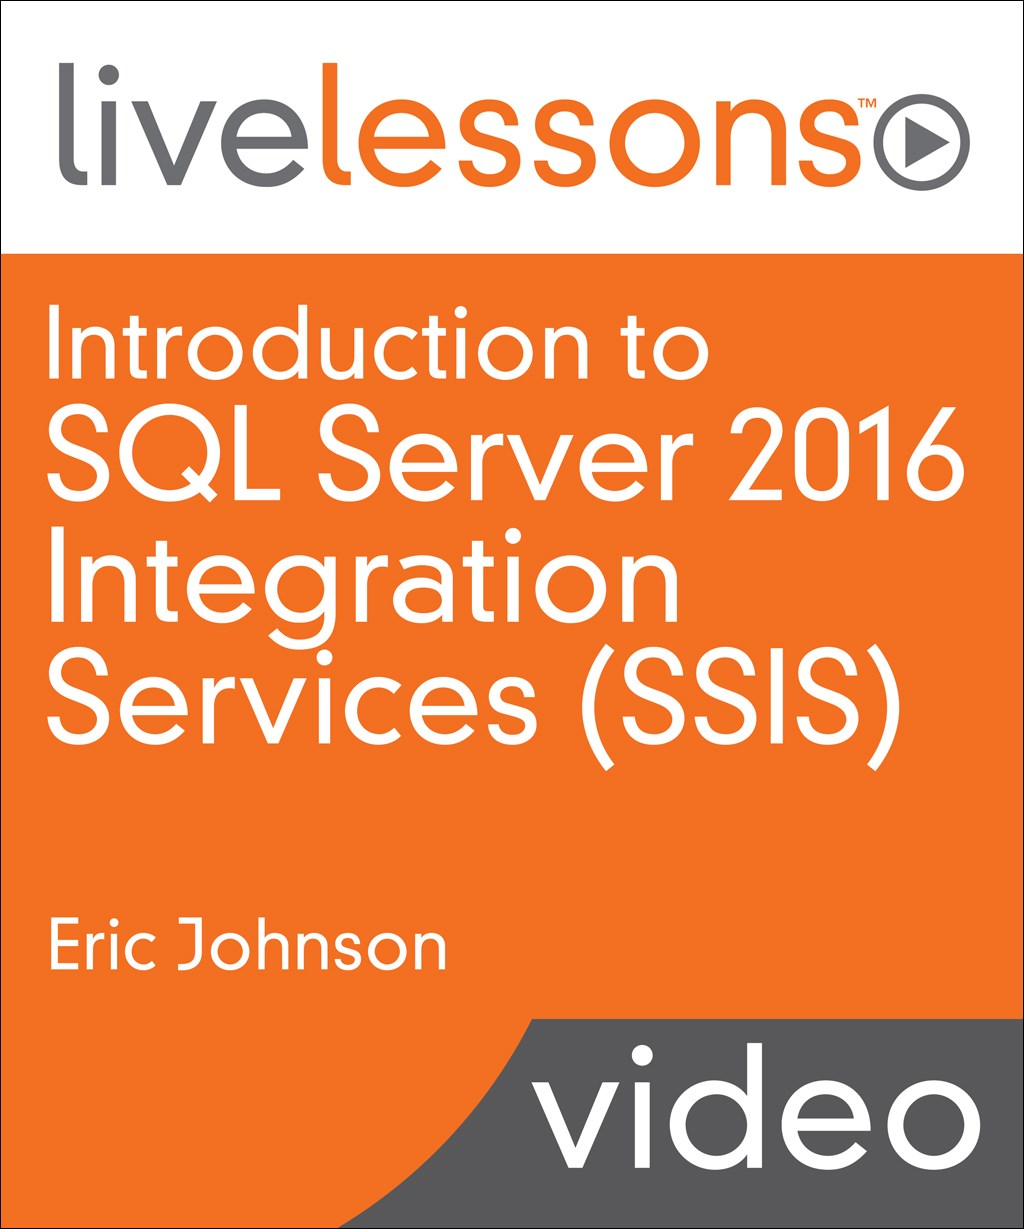 Introduction to SQL Server 2016 Integration Services (SSIS)